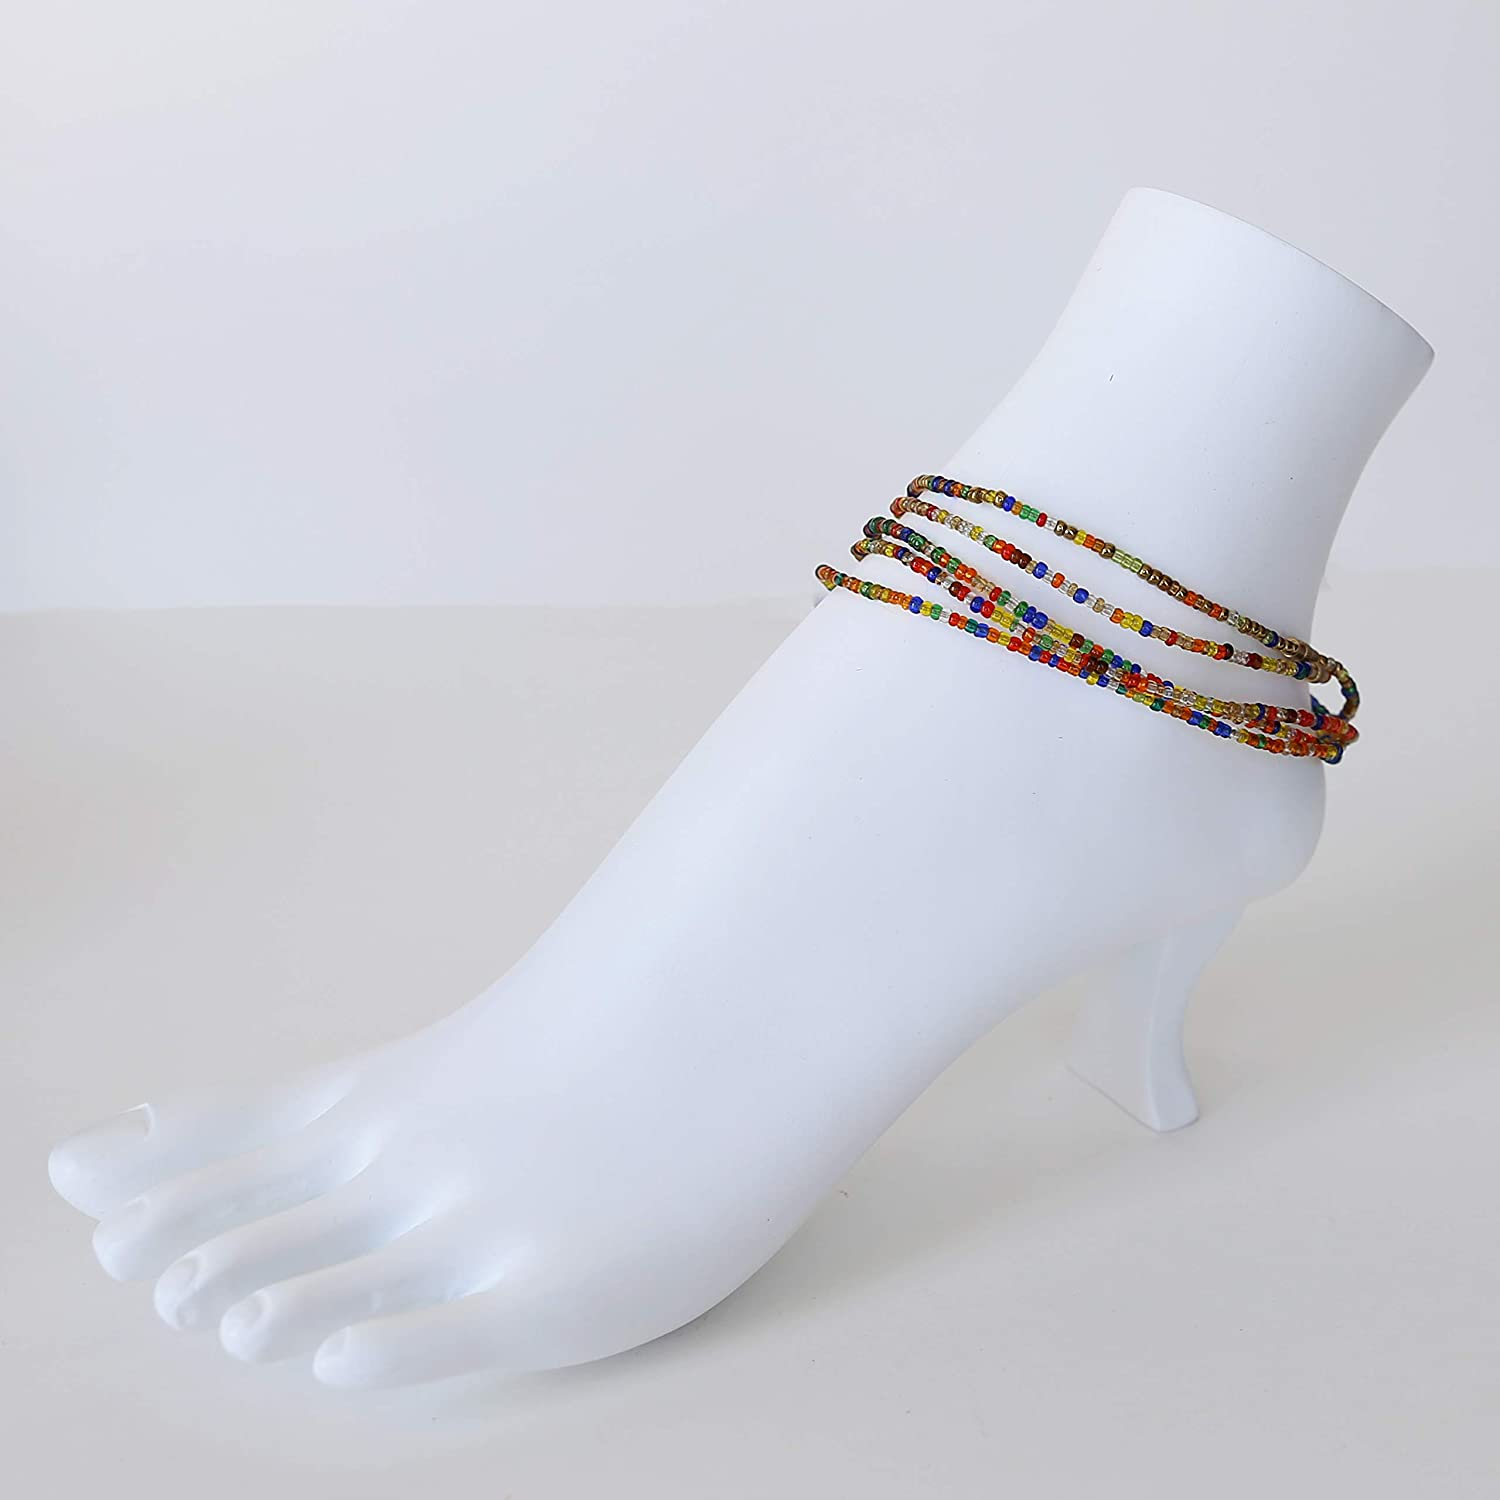 Gitzell Fair Trade Anklets, Hand Made African Beaded Anklets, Colorful, Easily Adjustable Set of 12